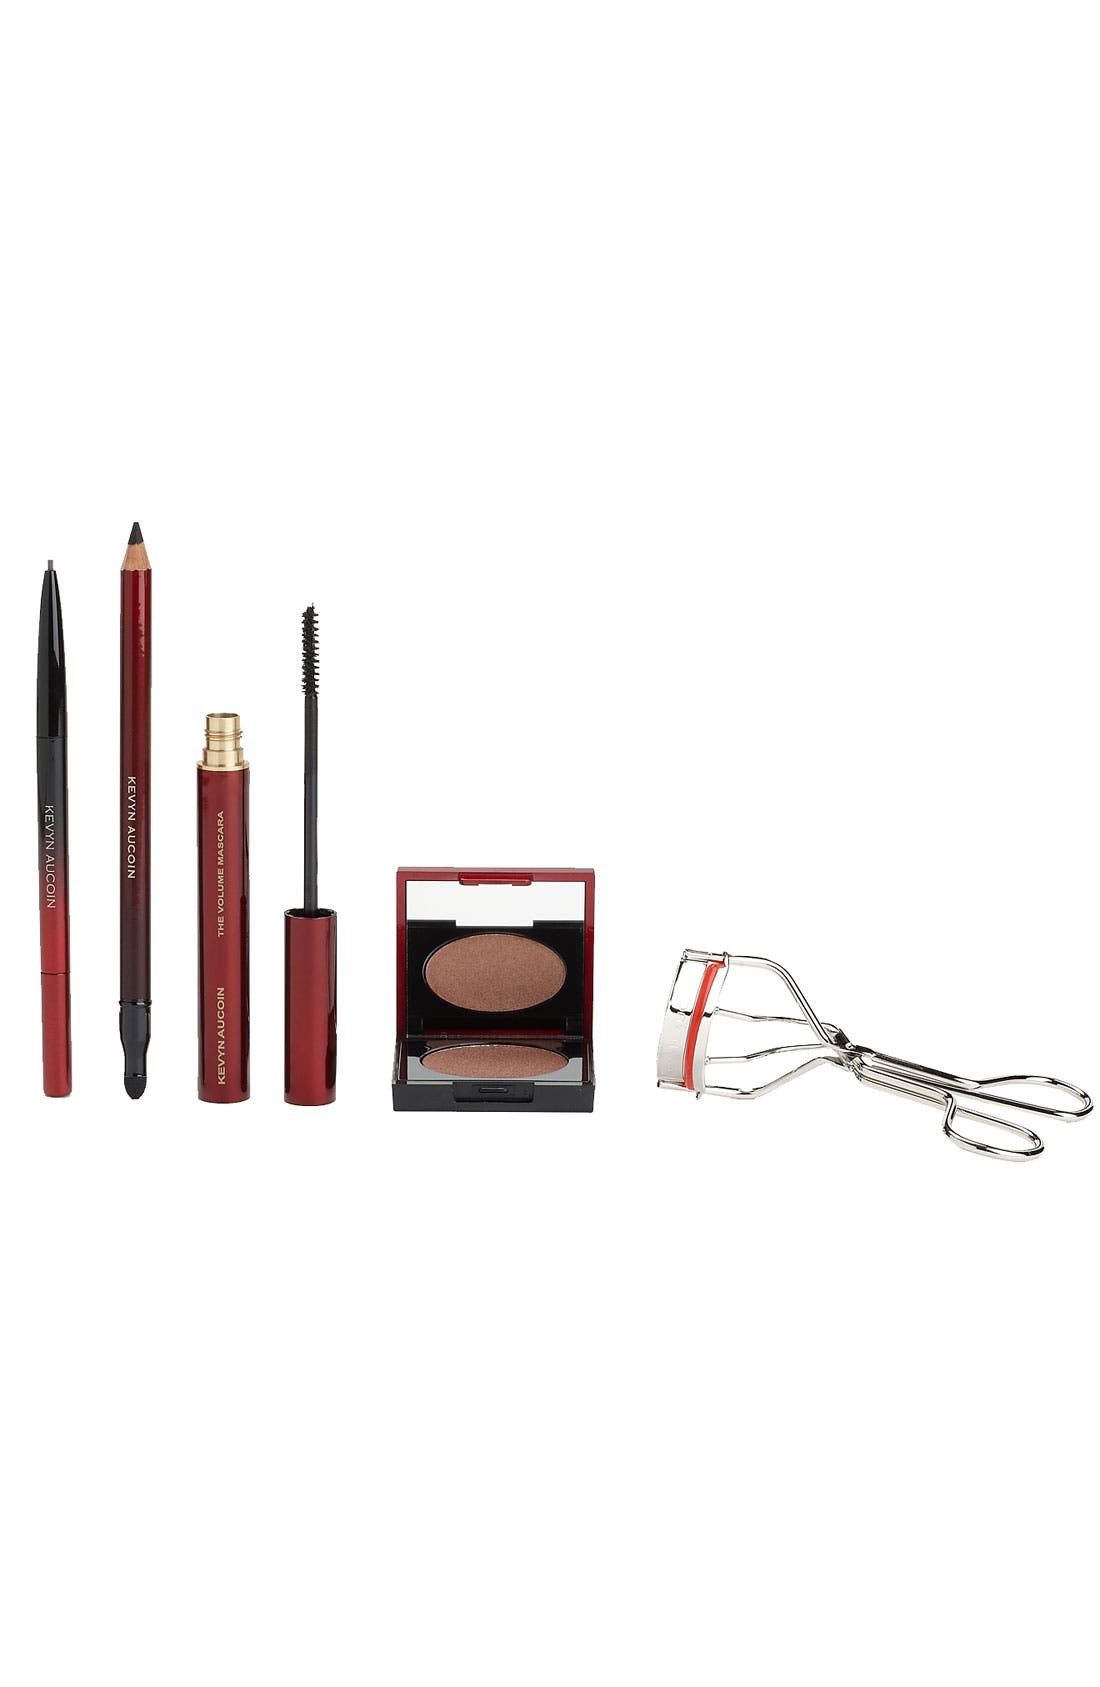 Alternate Image 1 Selected - Kevyn Aucoin Beauty 'Best Of' Kit ($121 Value)